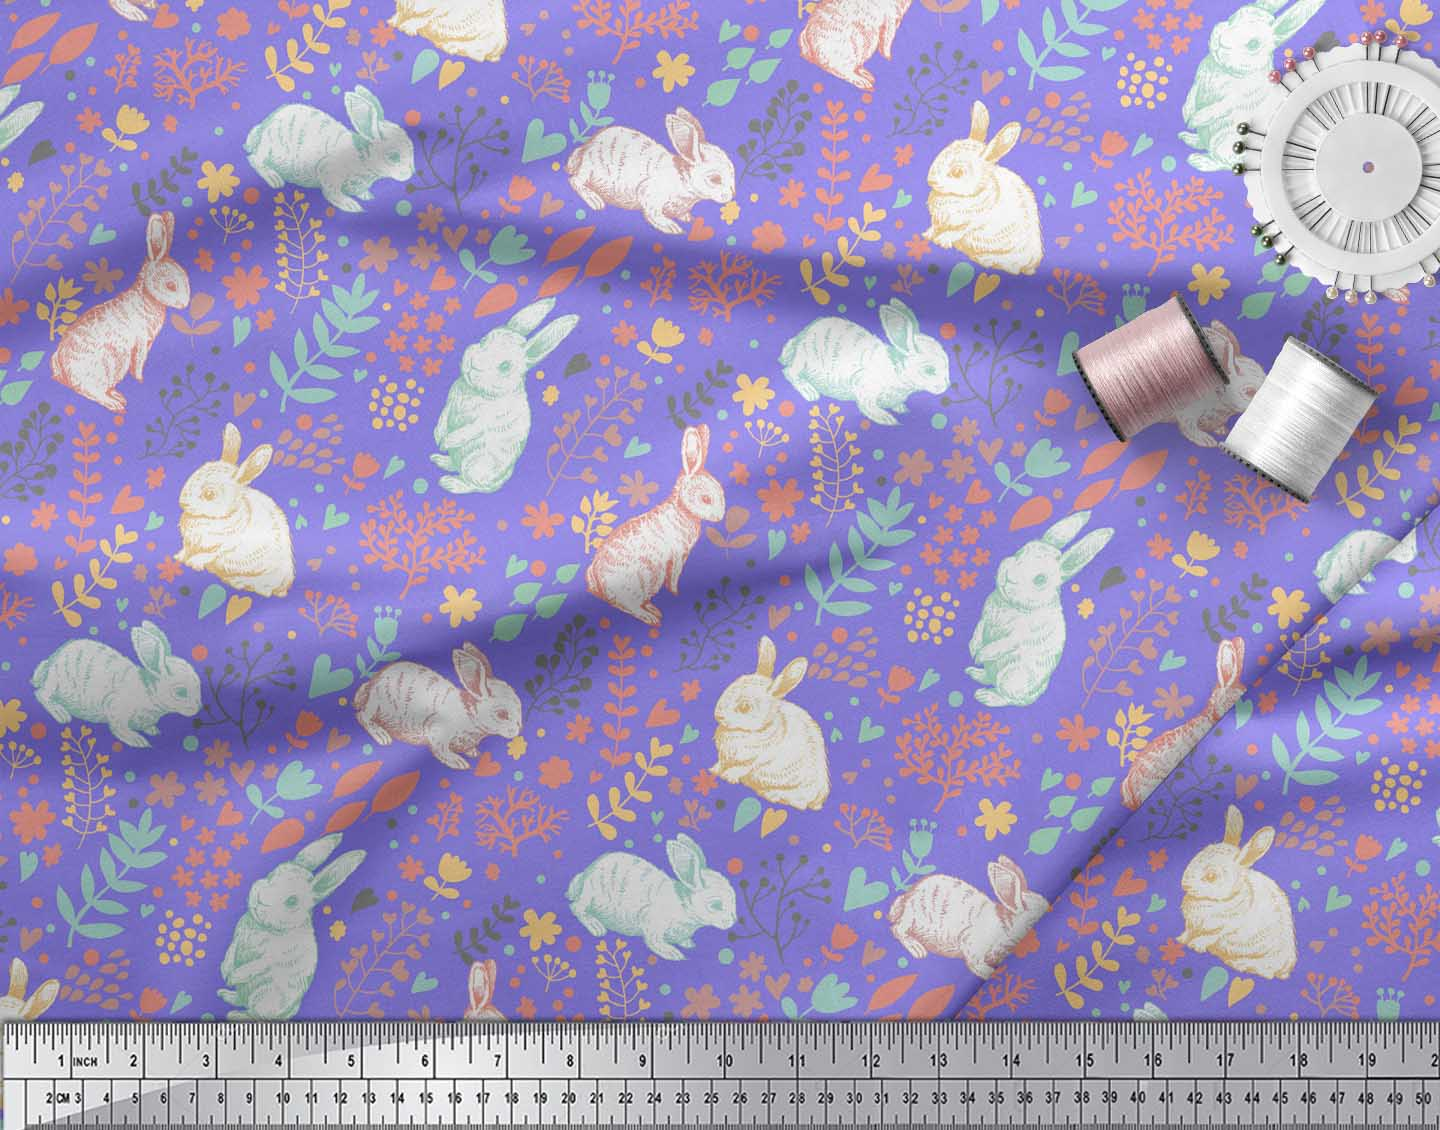 Soimoi-Purple-Cotton-Poplin-Fabric-Leaves-amp-Rabbit-Animal-Decor-v5d thumbnail 4